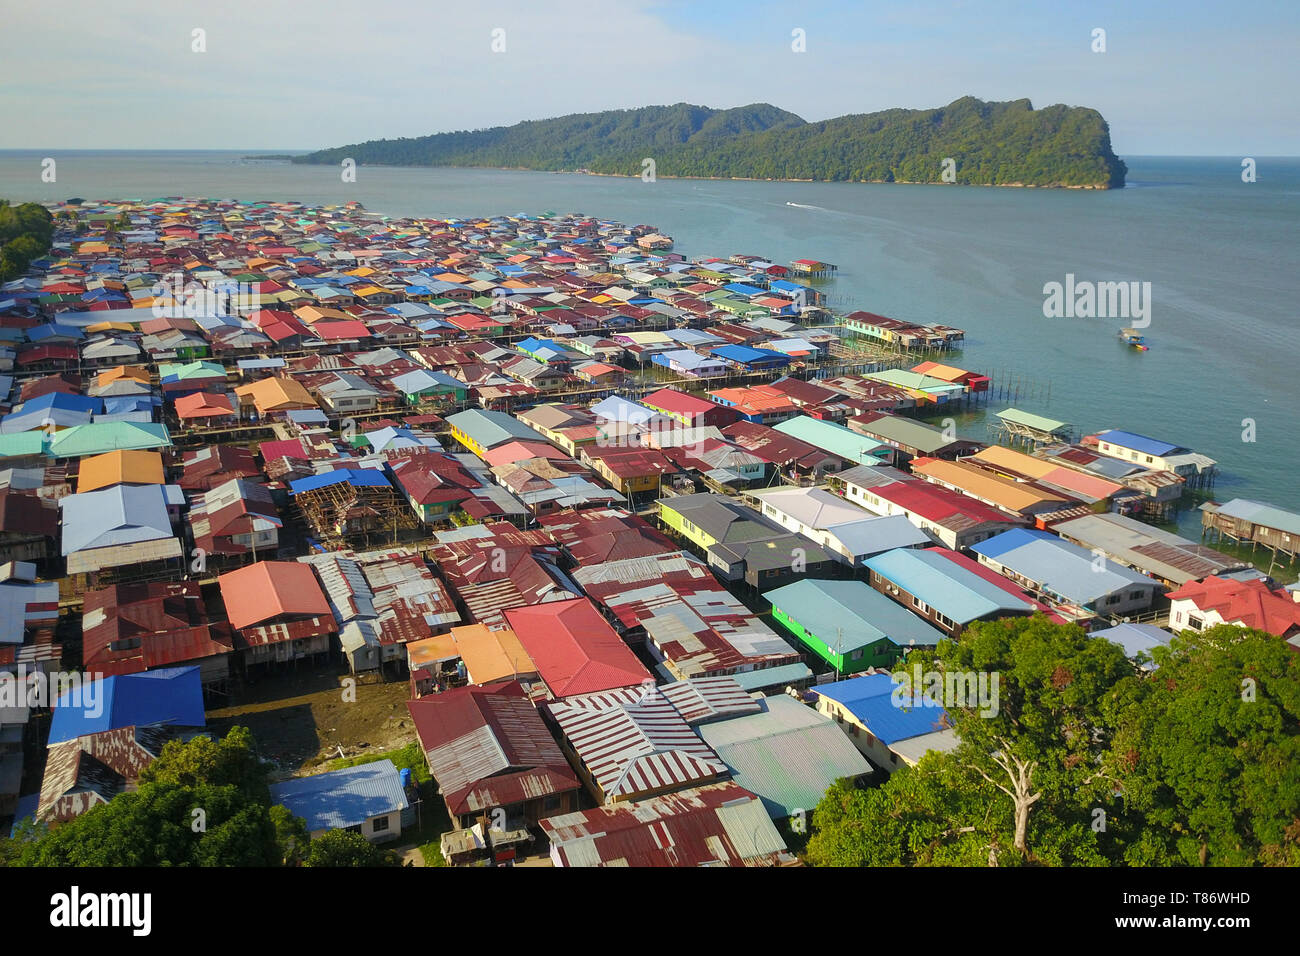 Kg. Sim Sim traditional water village located along seafront. Sandakan once known as Little Hong Kong of Borneo. - Stock Image